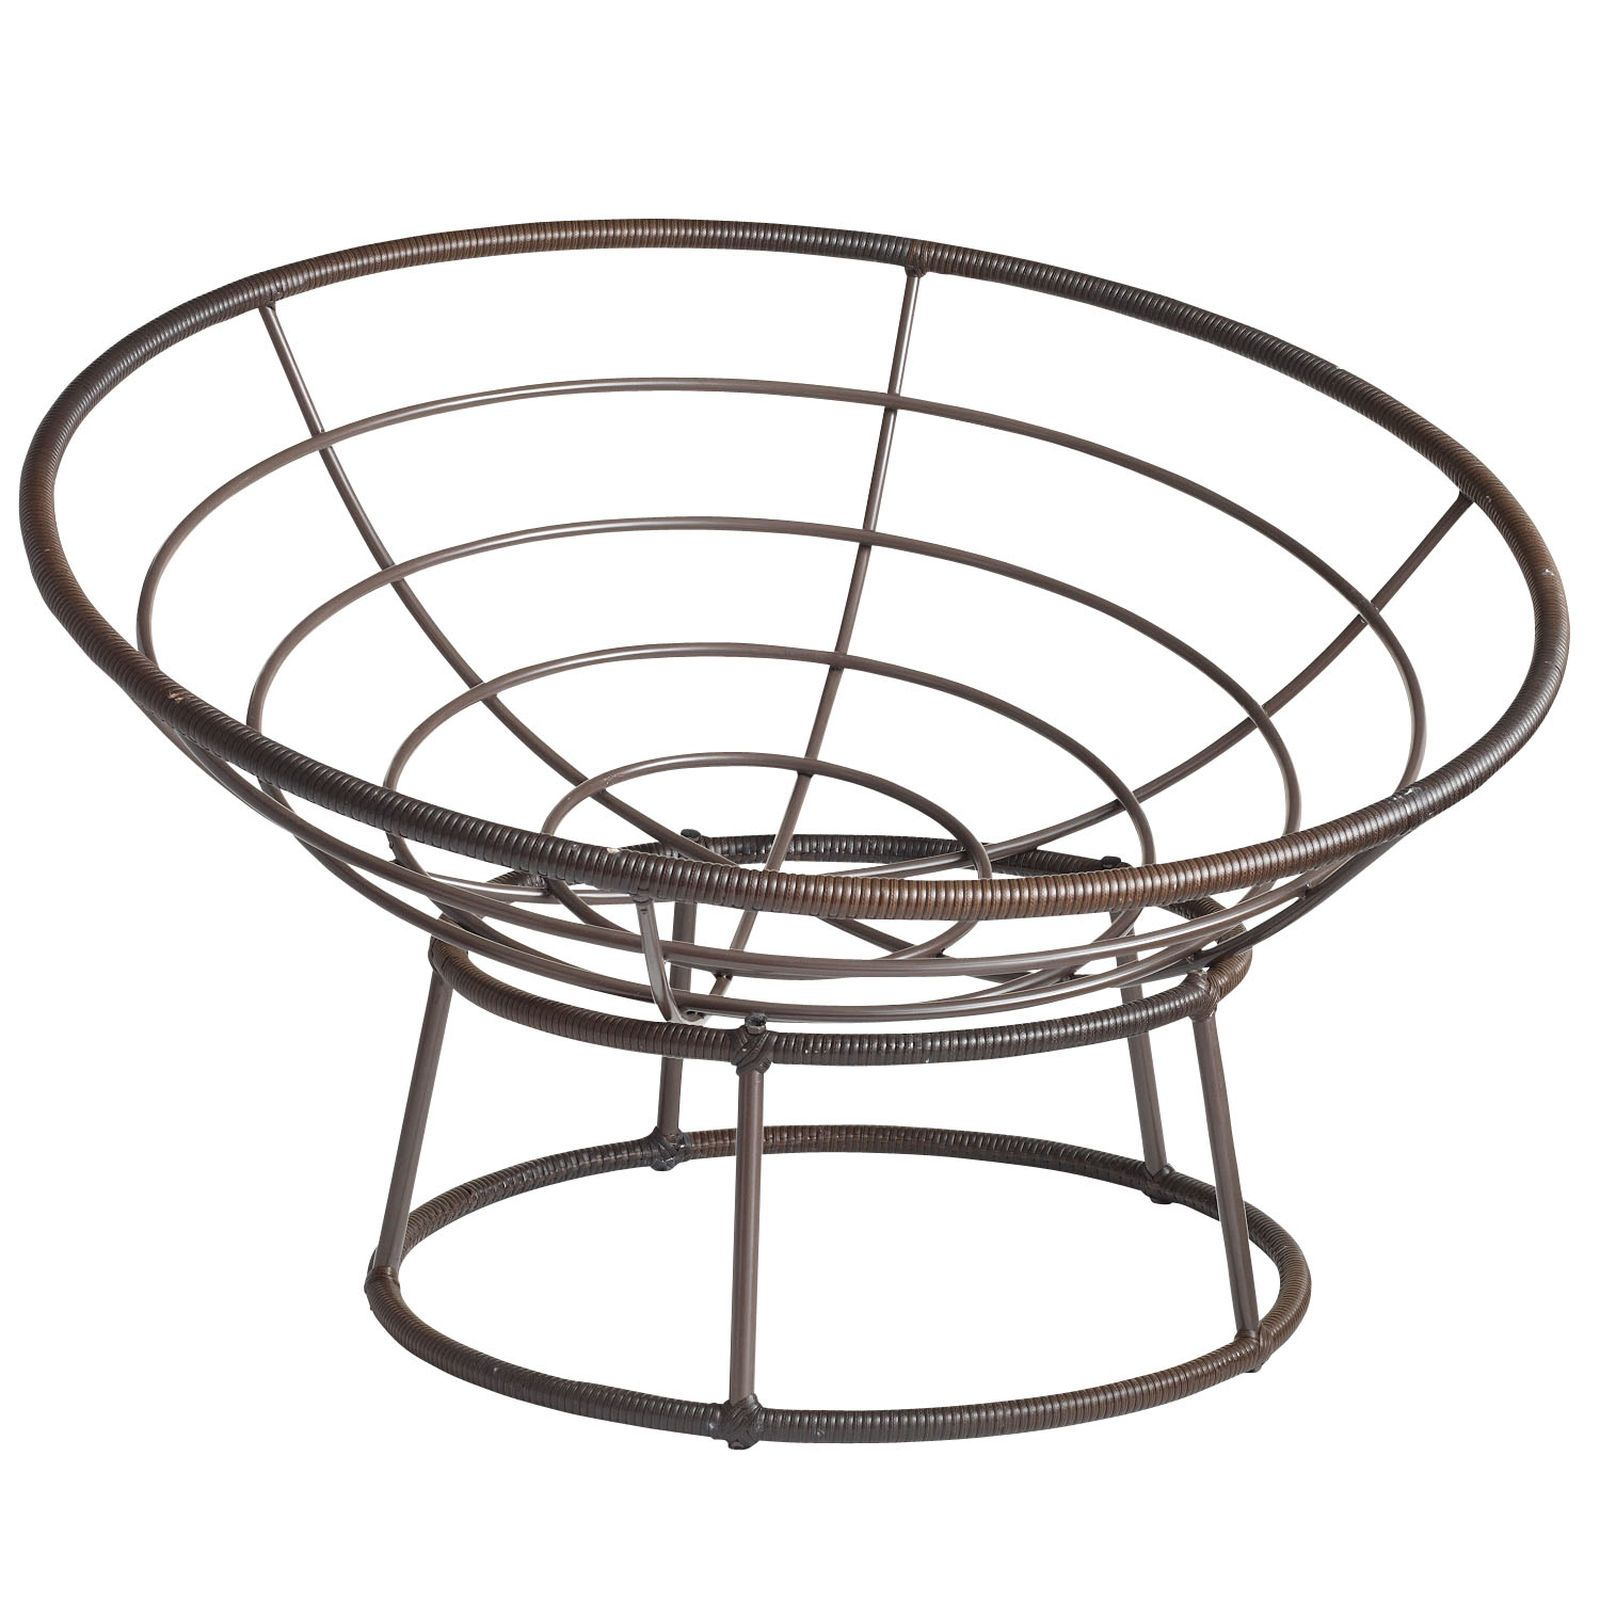 Outdoor Mocha Papasan Chair Frame | Papasan chair, High gloss and Rattan